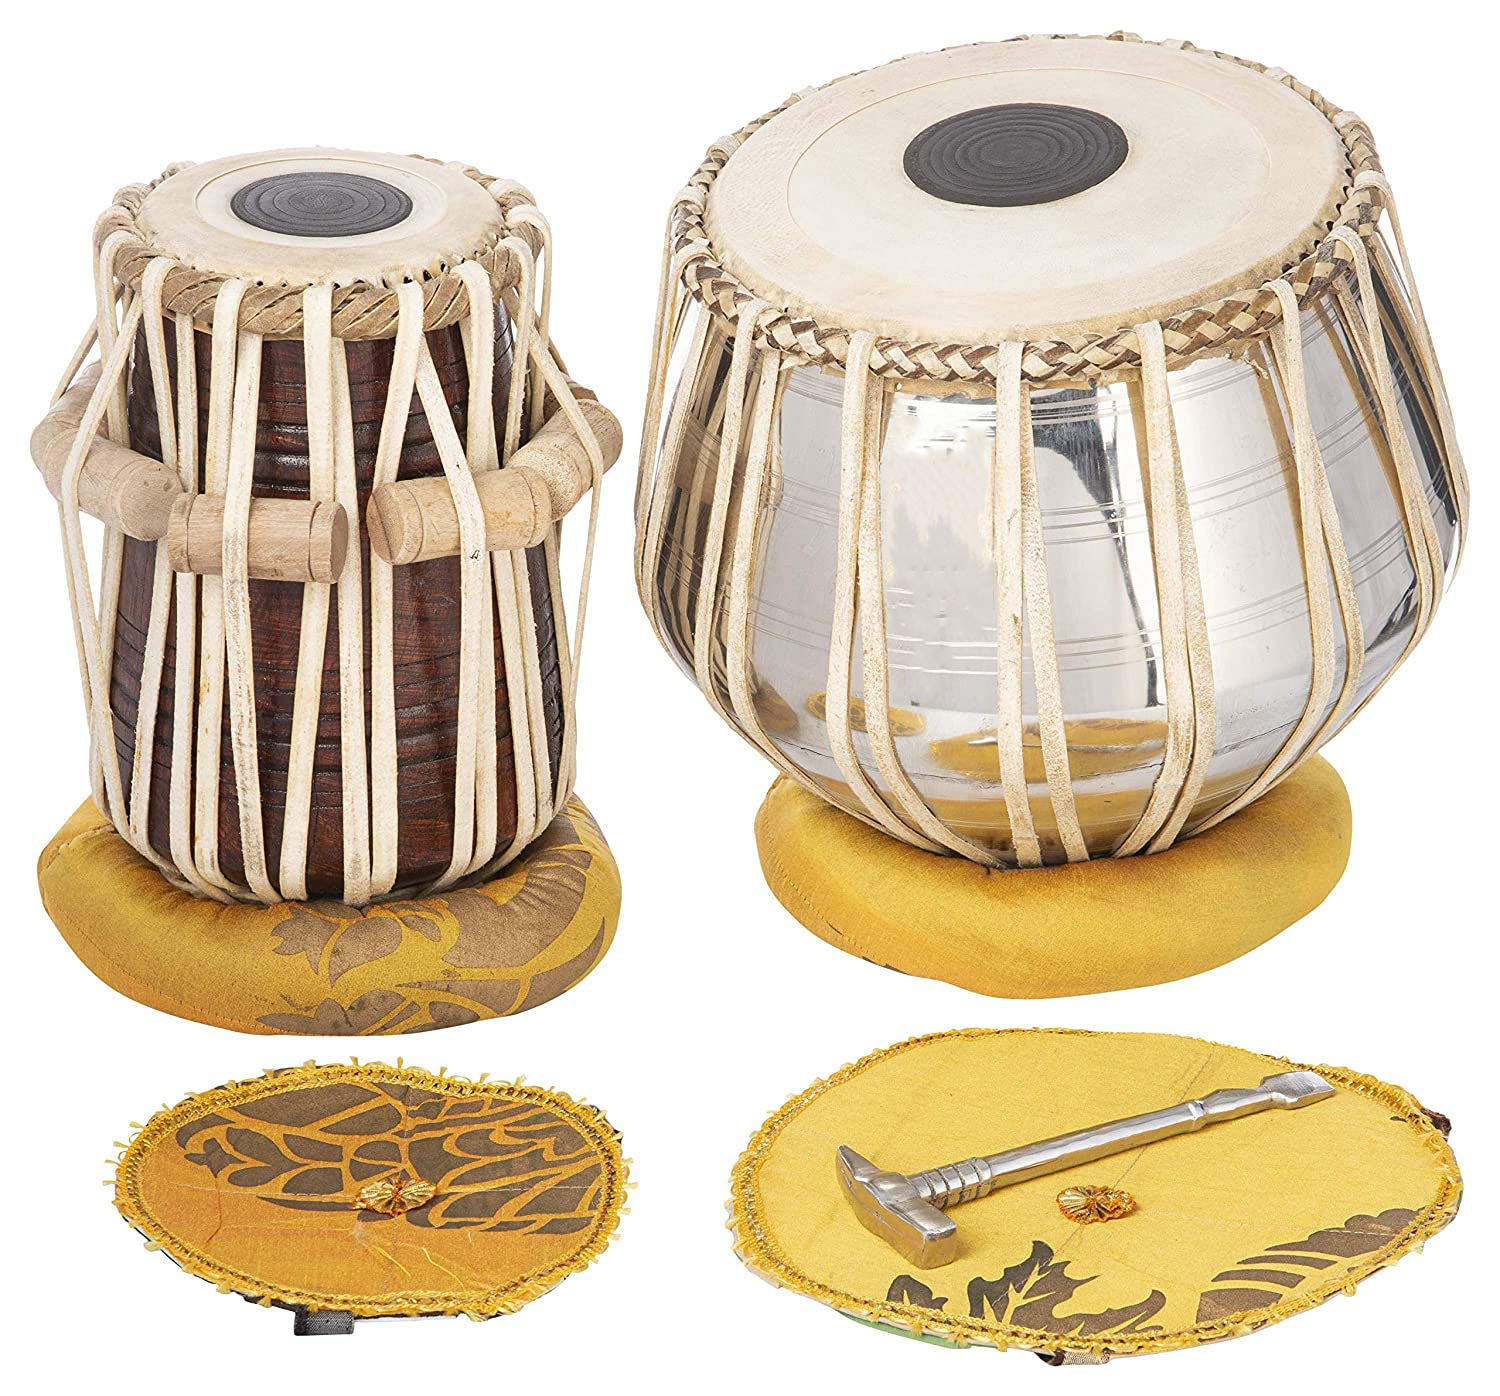 SAMZHE Musical Indian Tabla Set Double Strap Vaddi Musical Instrument Bag Cusion Cover (Metal) (1)